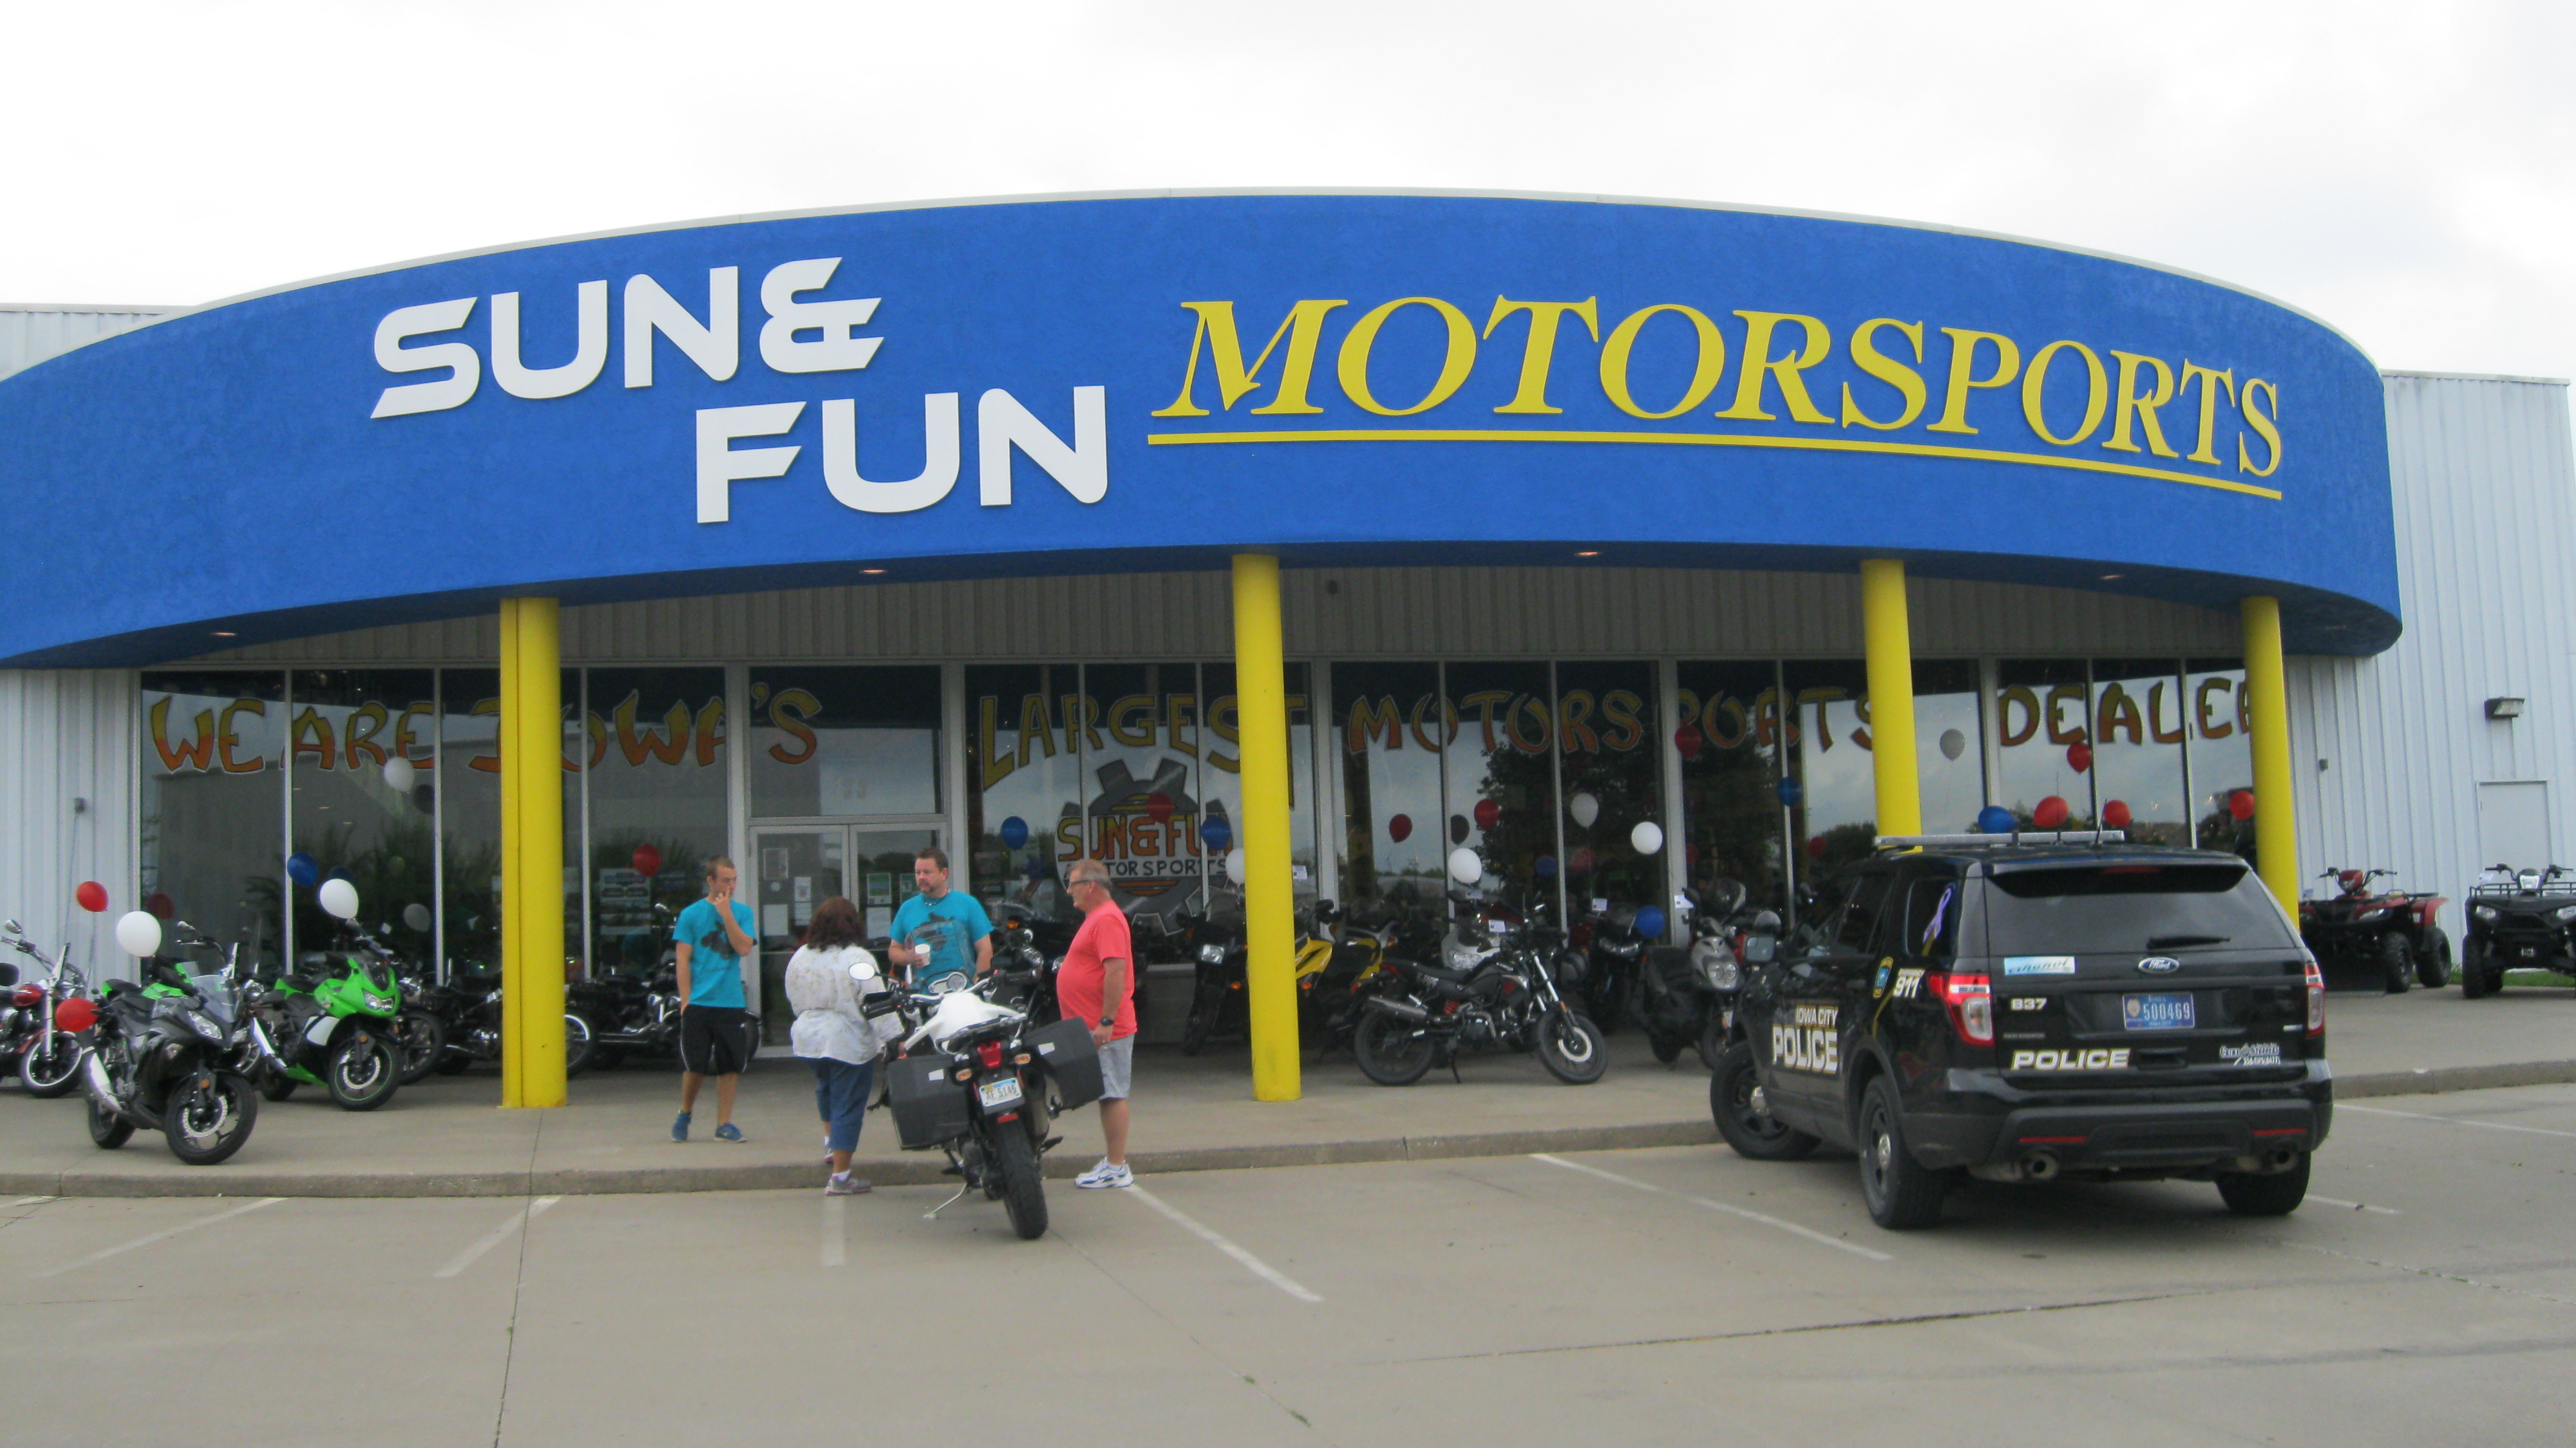 Sun and fun motorsports in iowa city ia 52240 for Motor city powersports hours